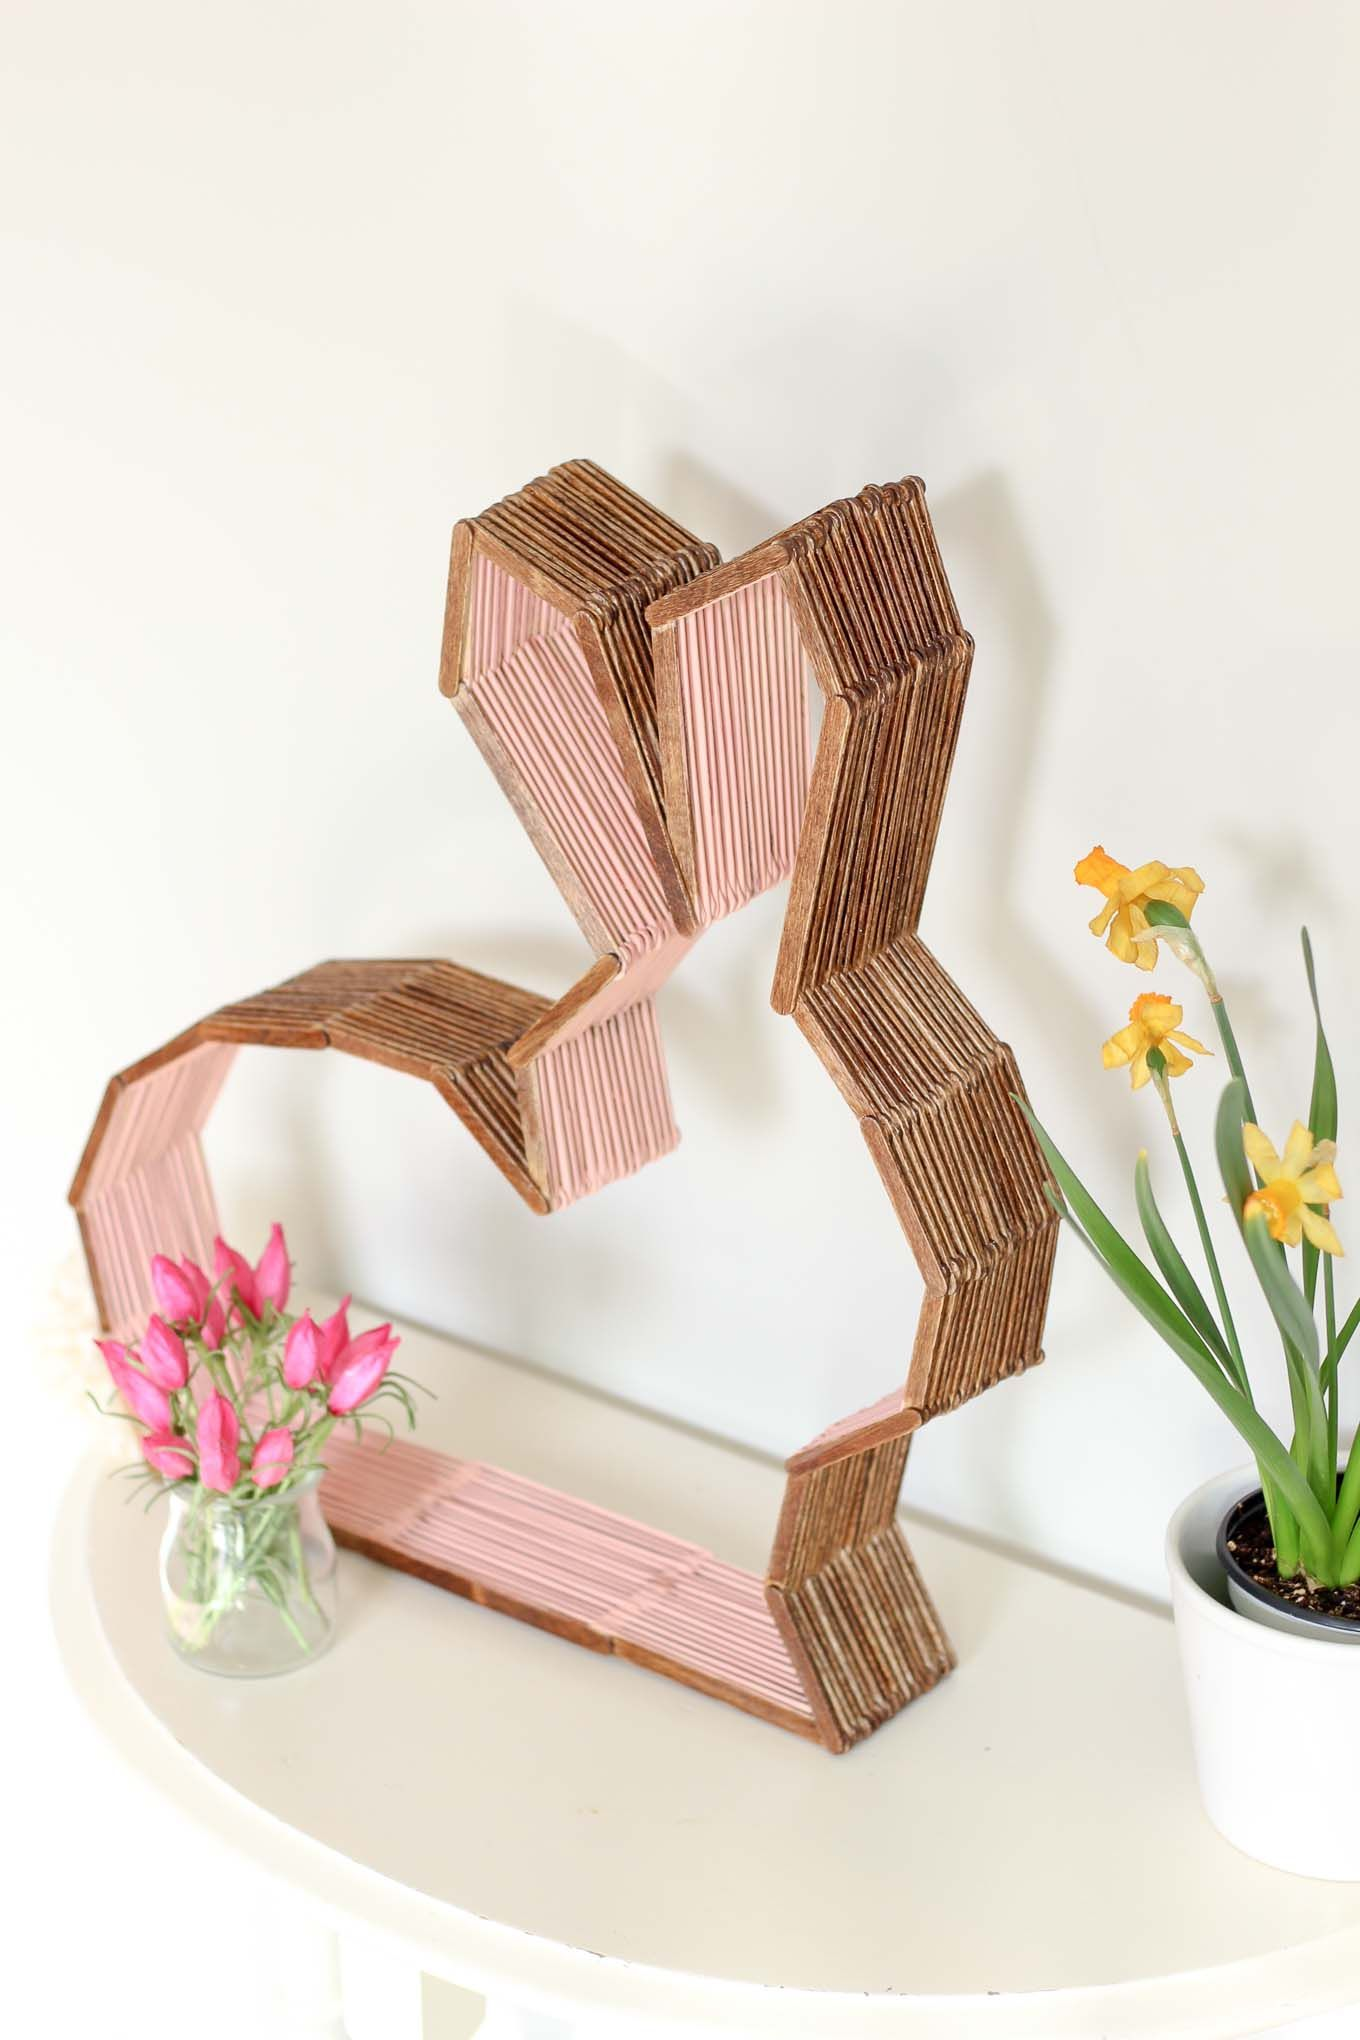 45 crafty ideas for home decor you can make yourself diy this bunny shelf makes a perfect easter craft idea for spring or diy nursery decor to enjoy year round make it out of popsicle sticks using the solutioingenieria Gallery